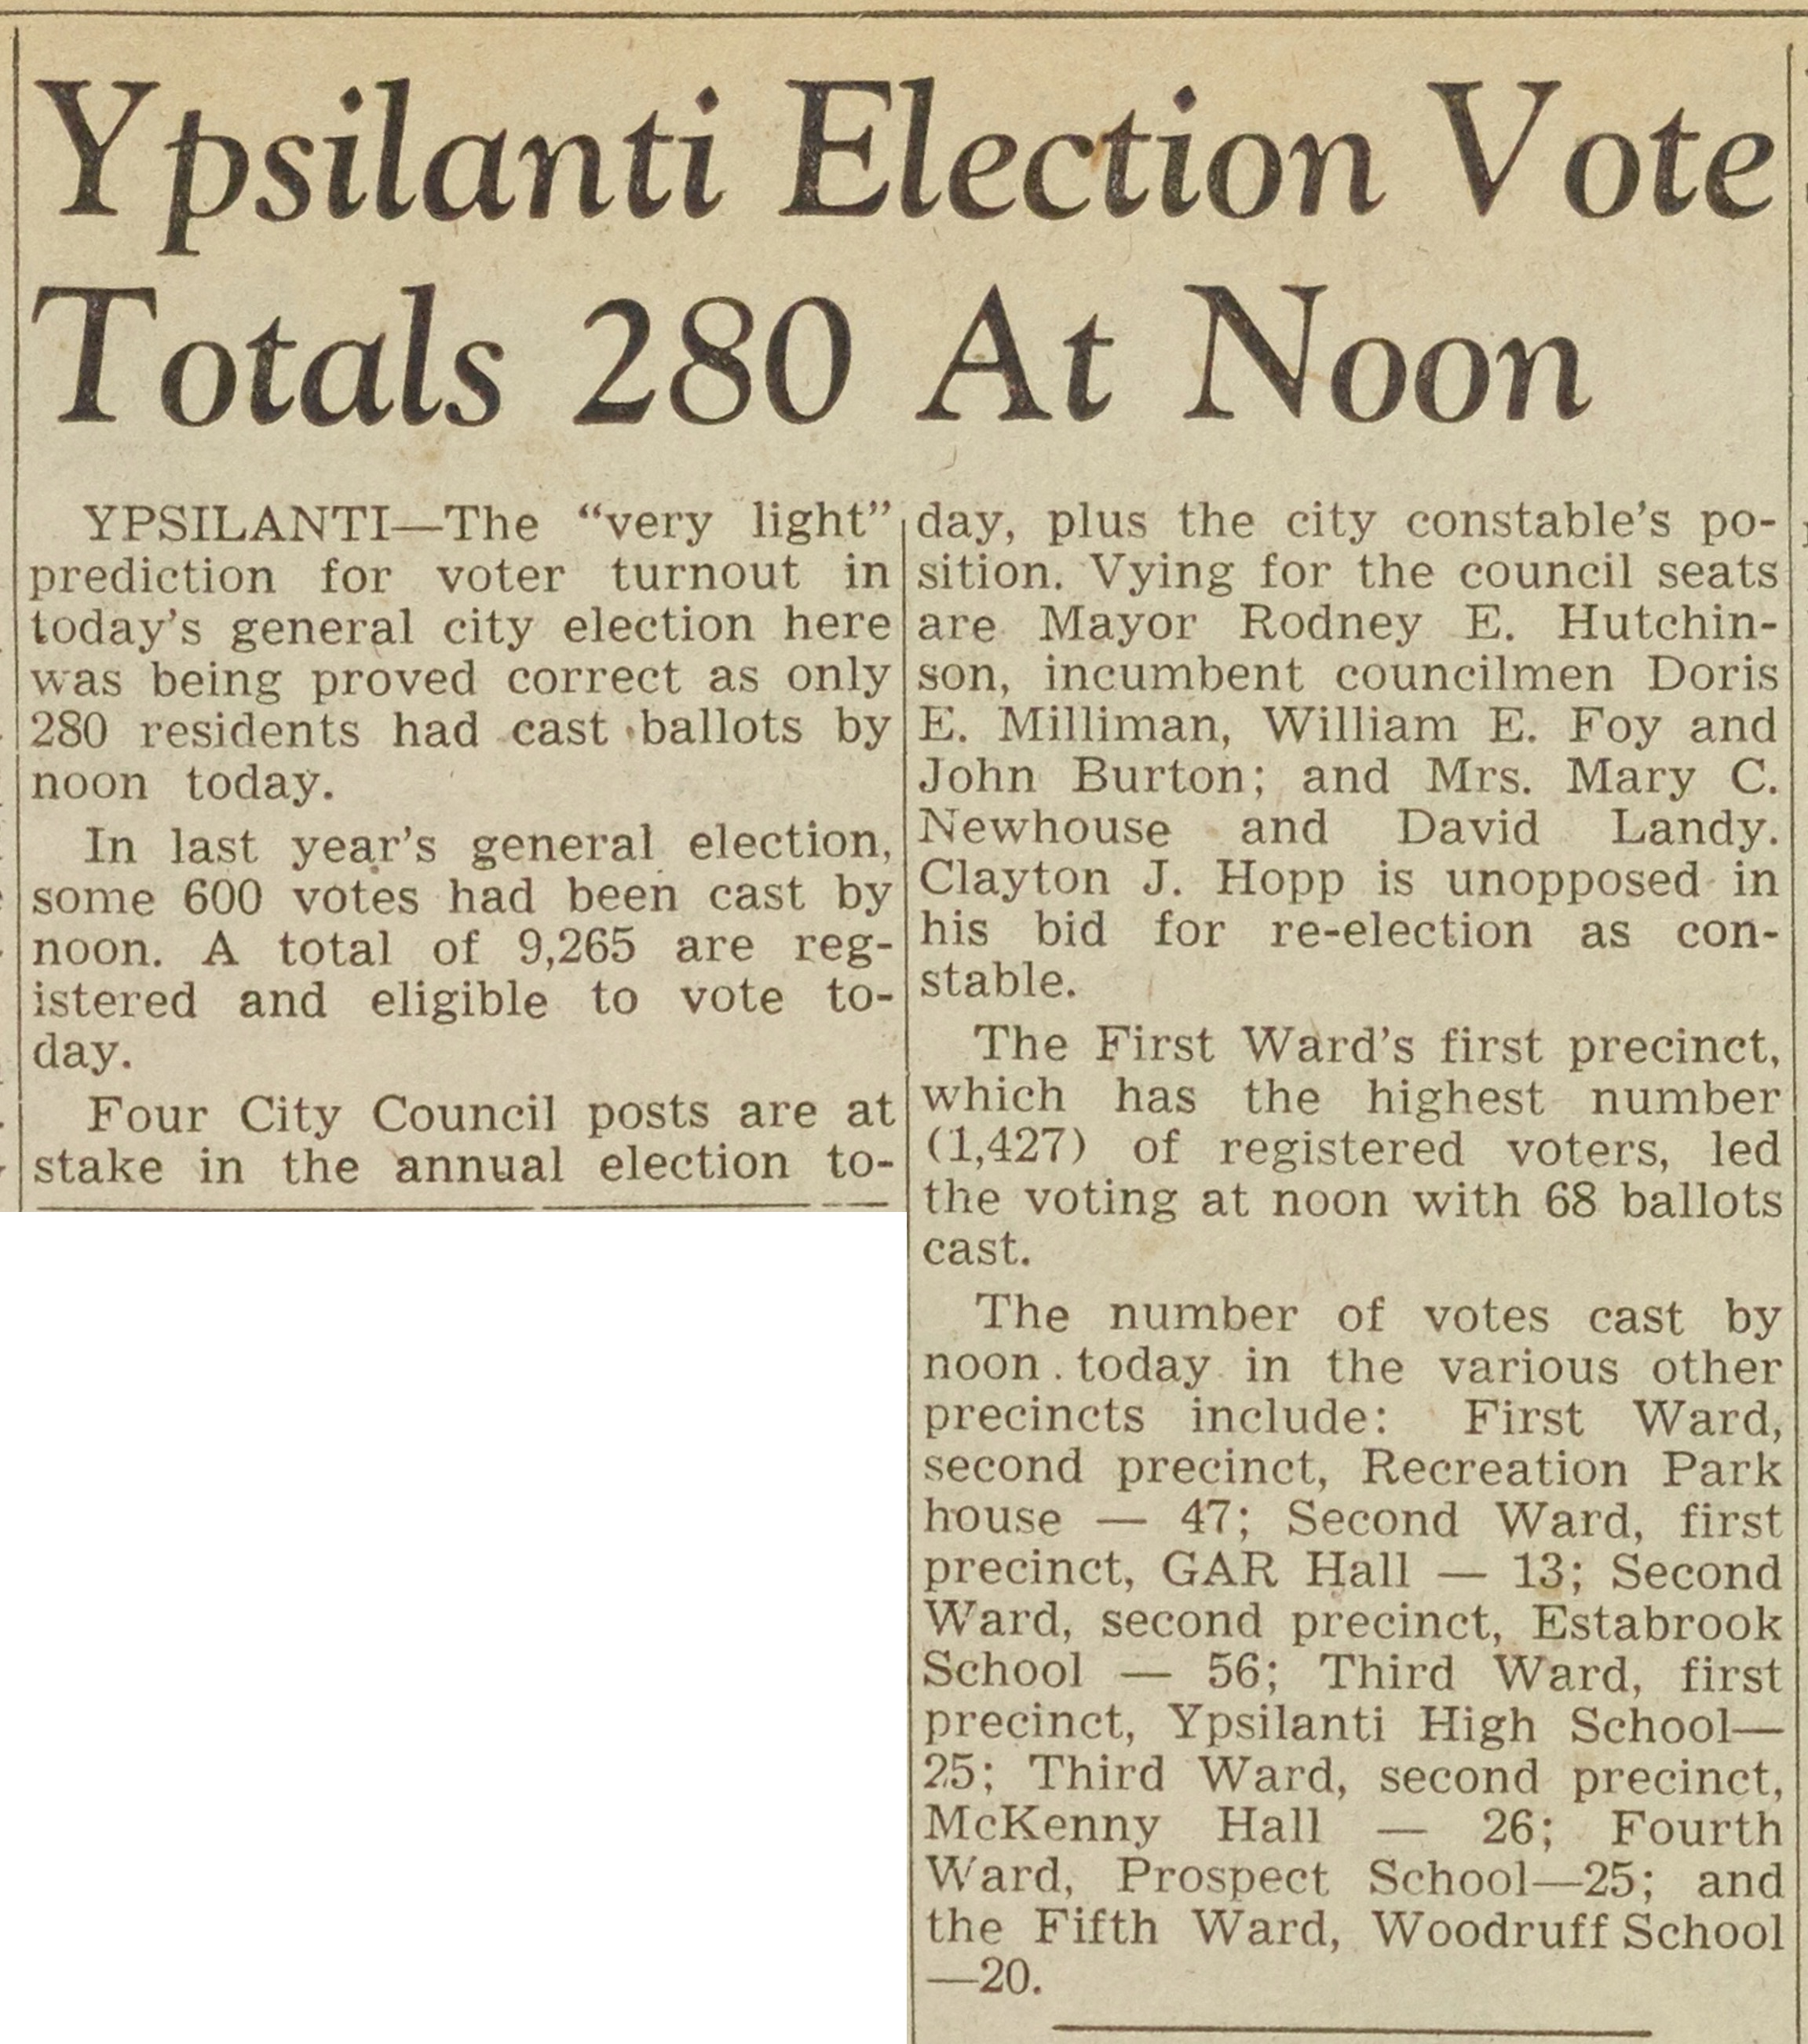 Ypsilanti Election Vote Totals 280 At Noon image